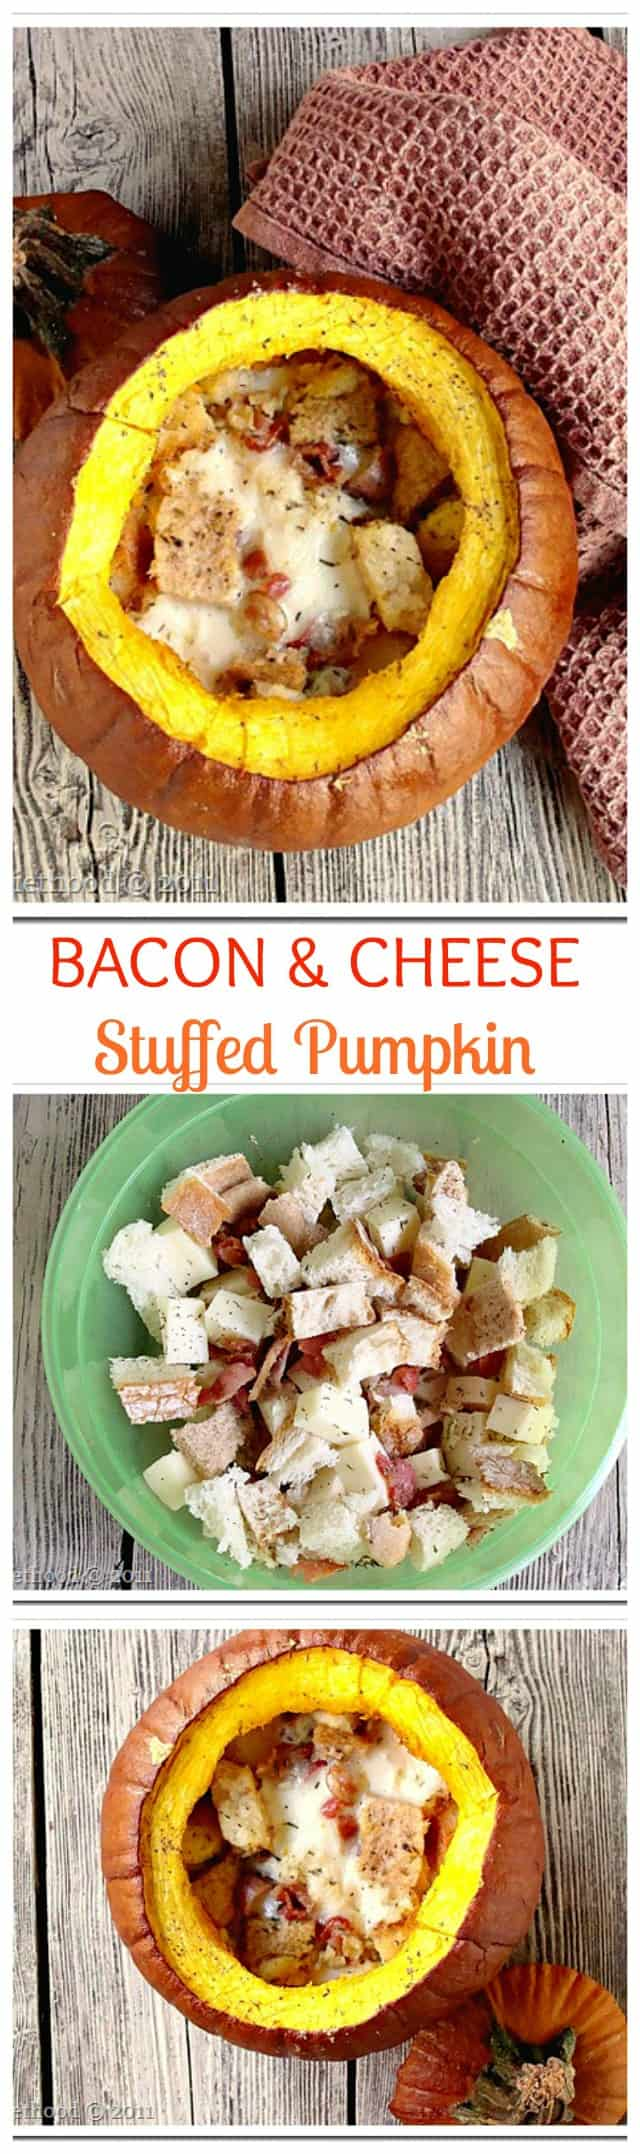 Bacon and Cheese Stuffed Pumpkin www.diethood.com